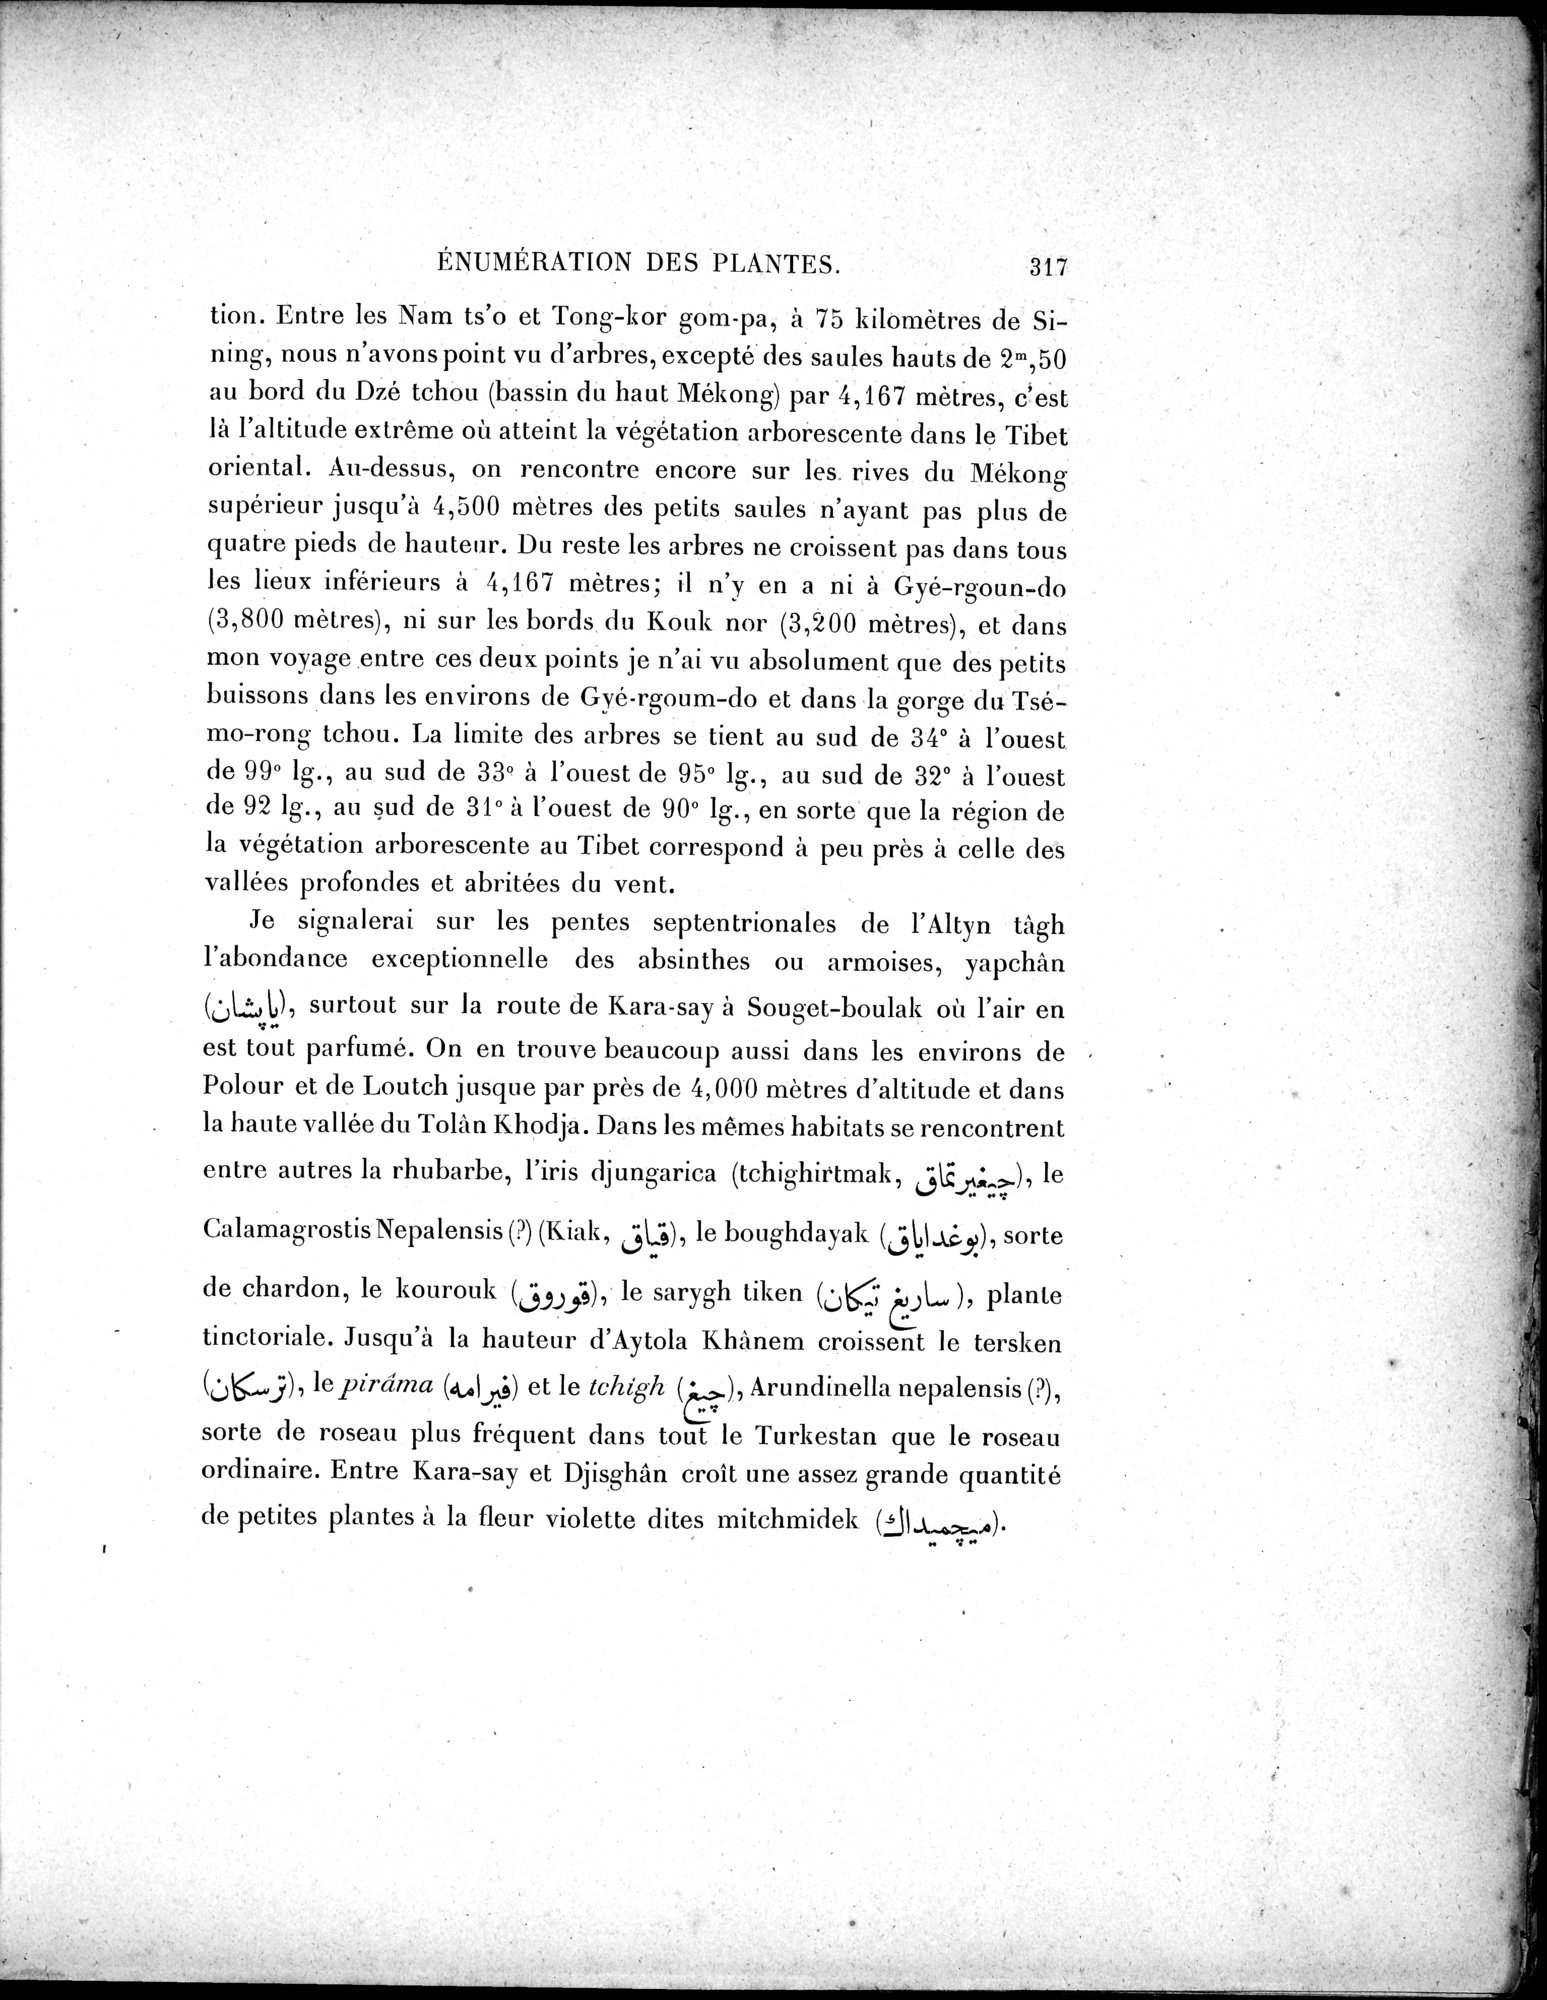 Mission Scientifique dans la Haute Asie 1890-1895 : vol.3 / Page 337 (Grayscale High Resolution Image)